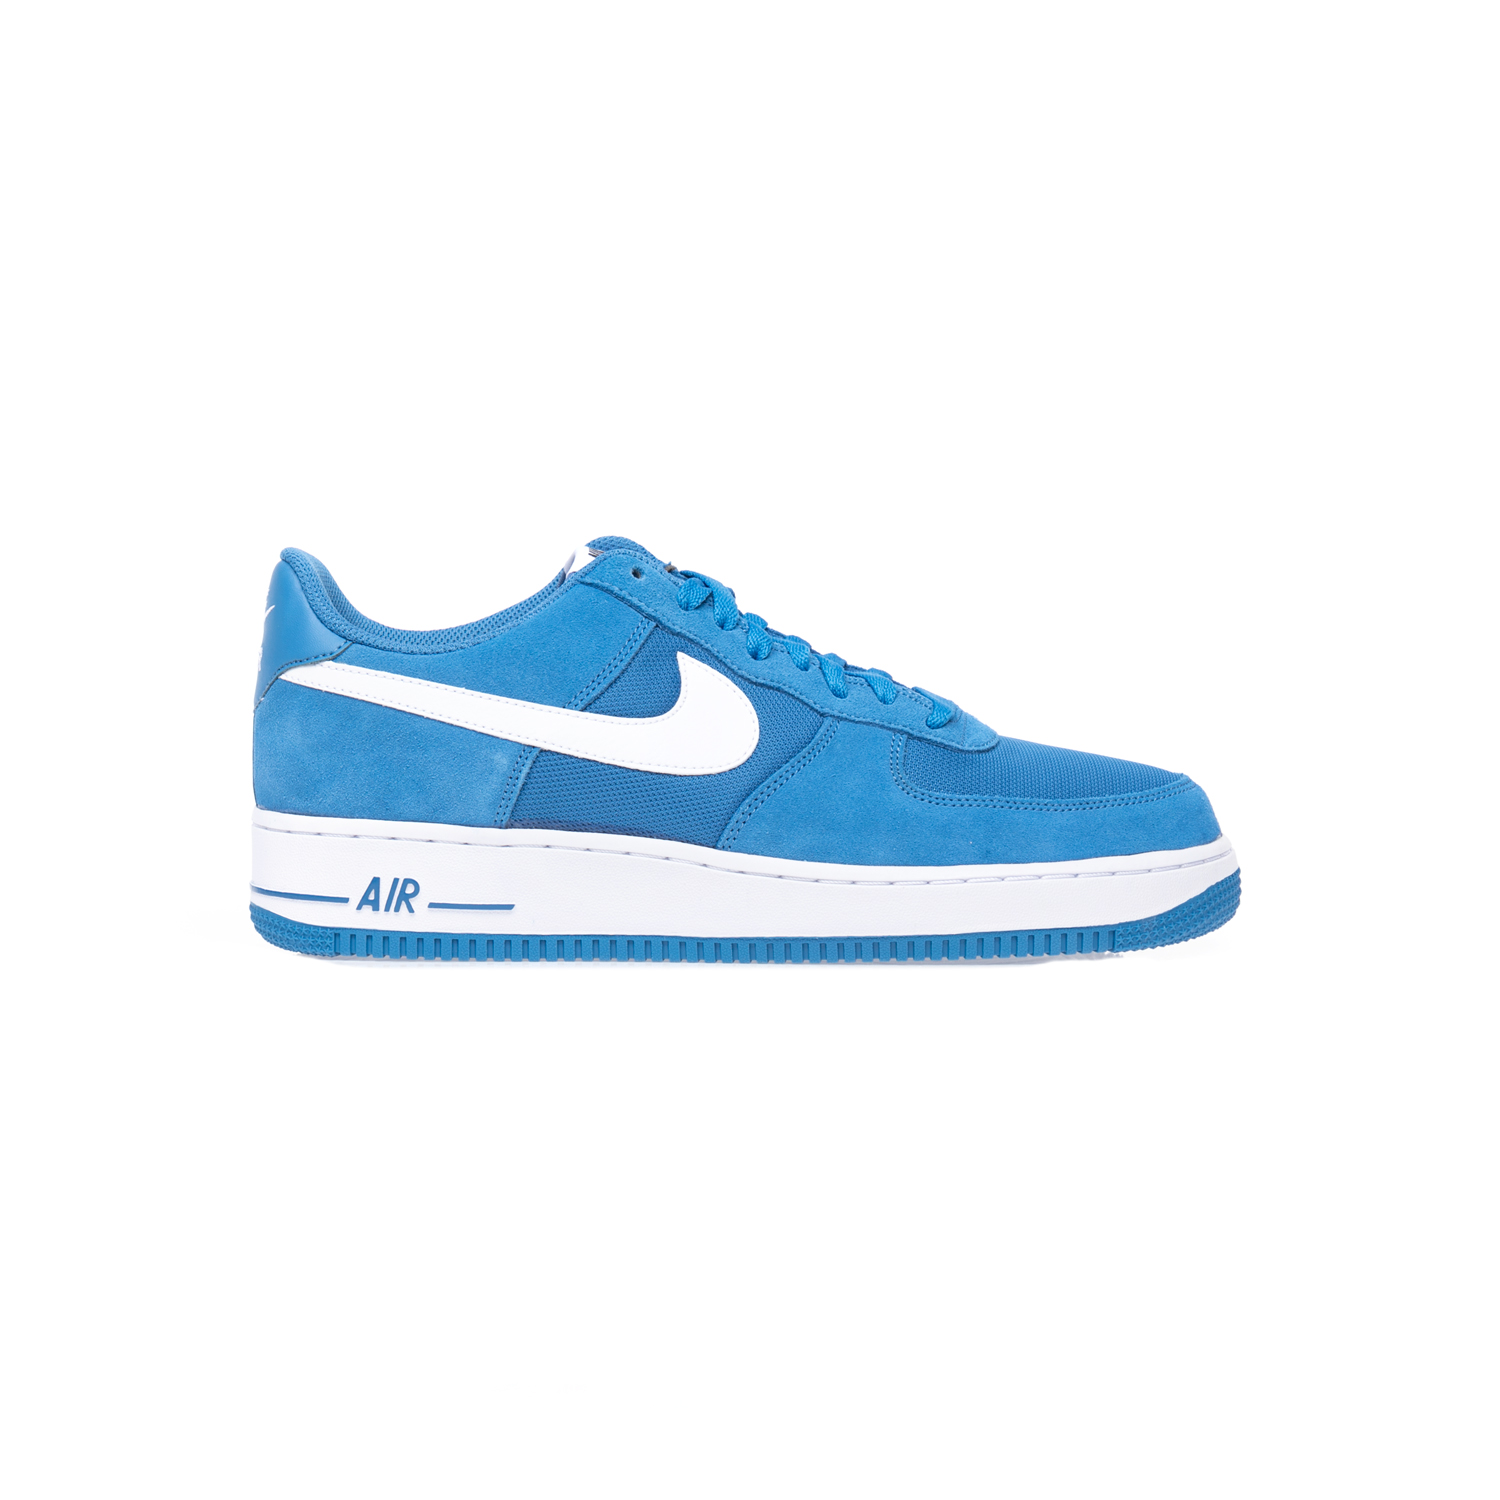 sports shoes 7c53e 56e33 Factoryoutlet NIKE – Ανδρικά παπούτσια NIKE AIR FORCE 1 μπλε